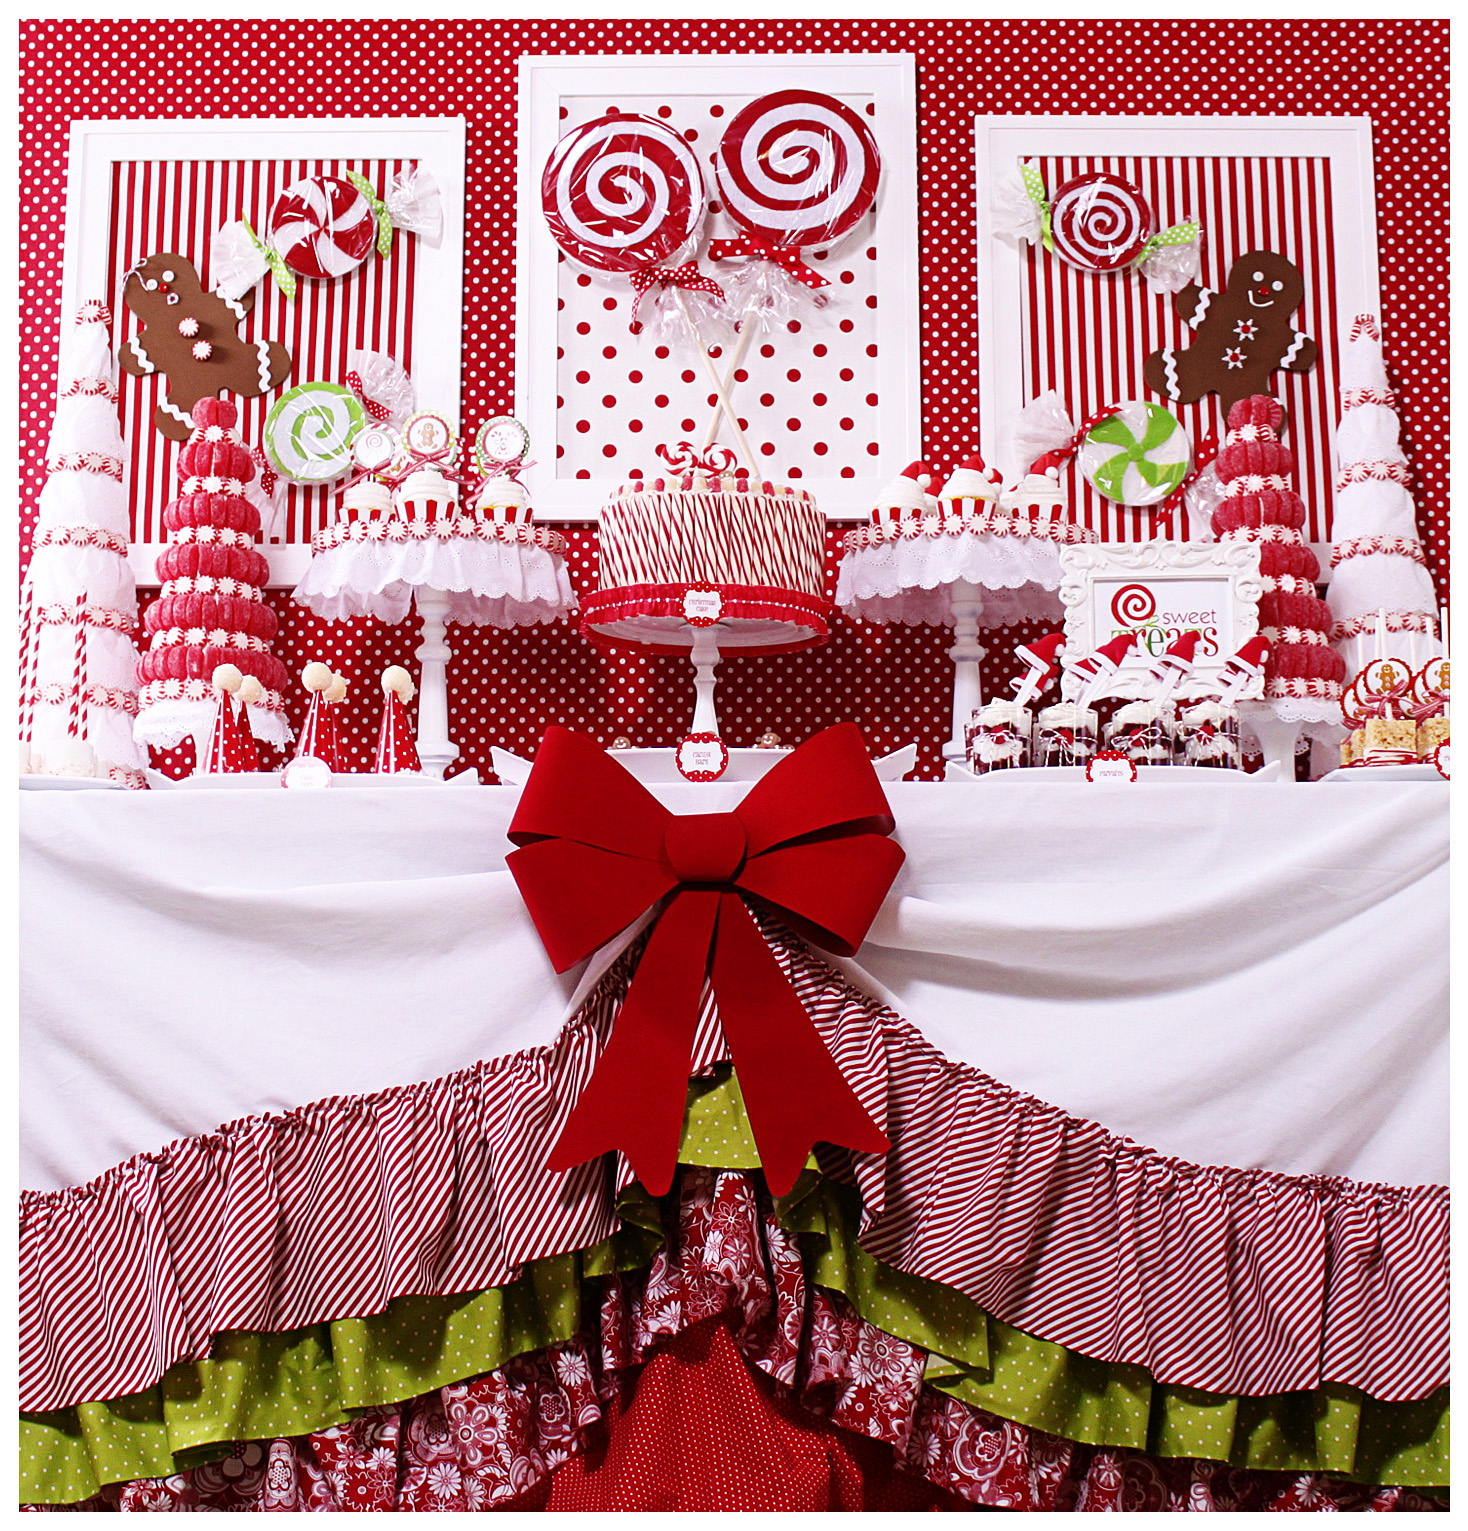 Christmas dessert table decoration ideas - Candy Christmas Dessert Table